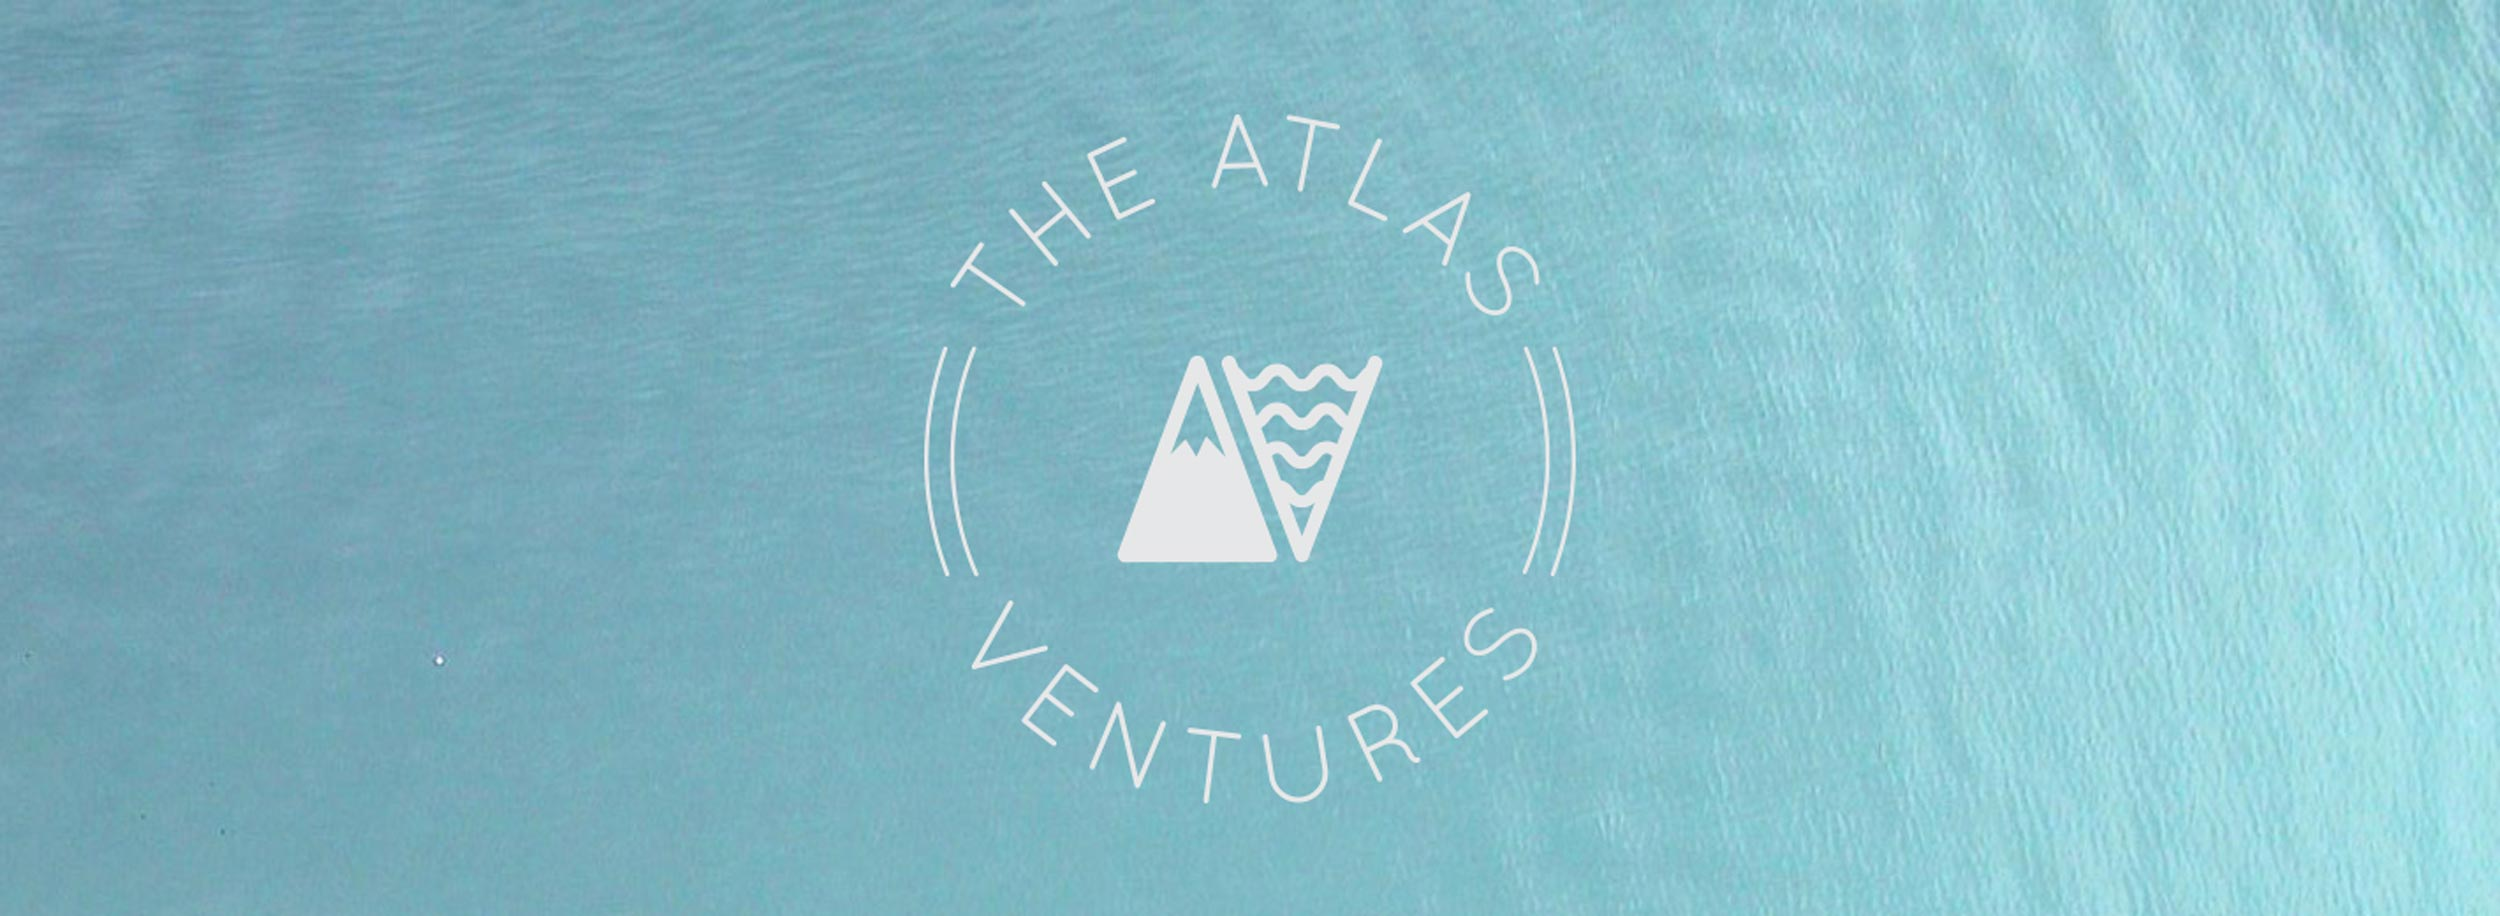 The logo for Atlas Ventures is inspiring and full of energy: it's all about fighting challenges and exceeding expectations. © LET'S PANDA